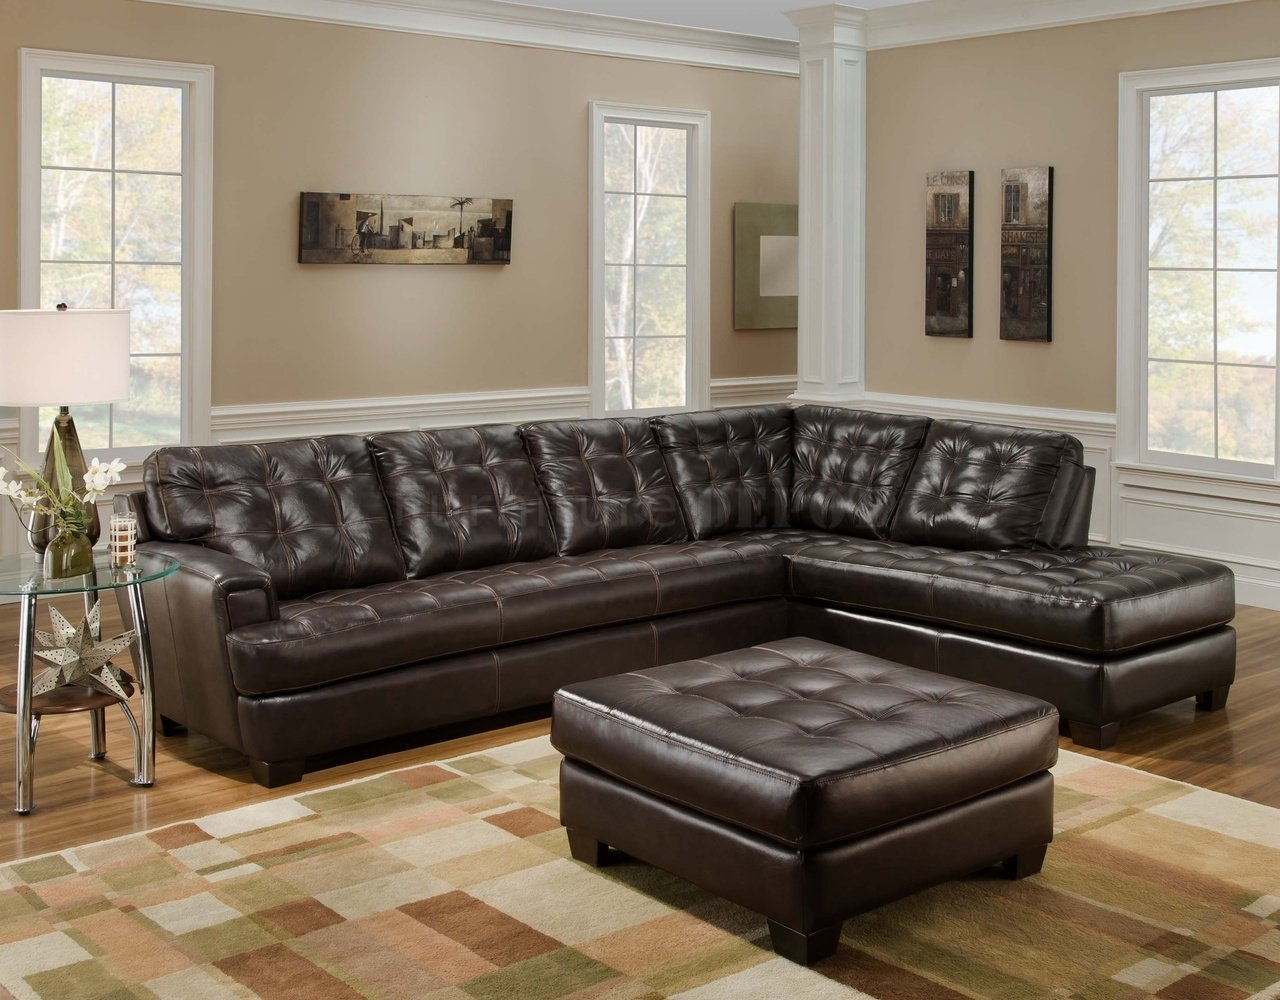 Dark Brown Leather Tufted Sectional Chaise Lounge Sofa With Ottoman With Leather Sectionals With Ottoman (View 8 of 10)